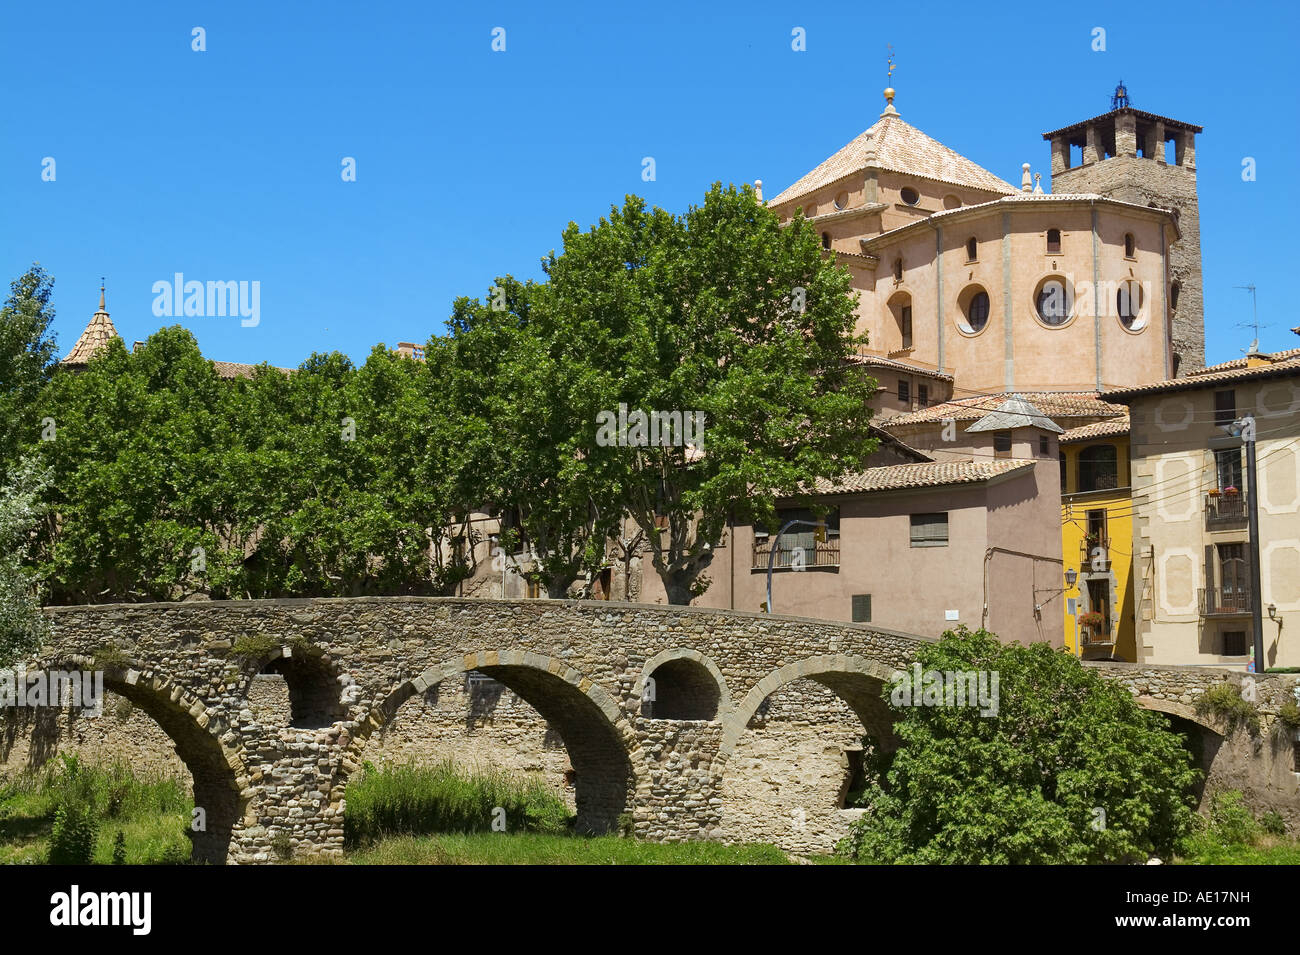 SAINT-PETER CATHEDRAL - VIC - CATALONIA - SPAIN - Stock Image